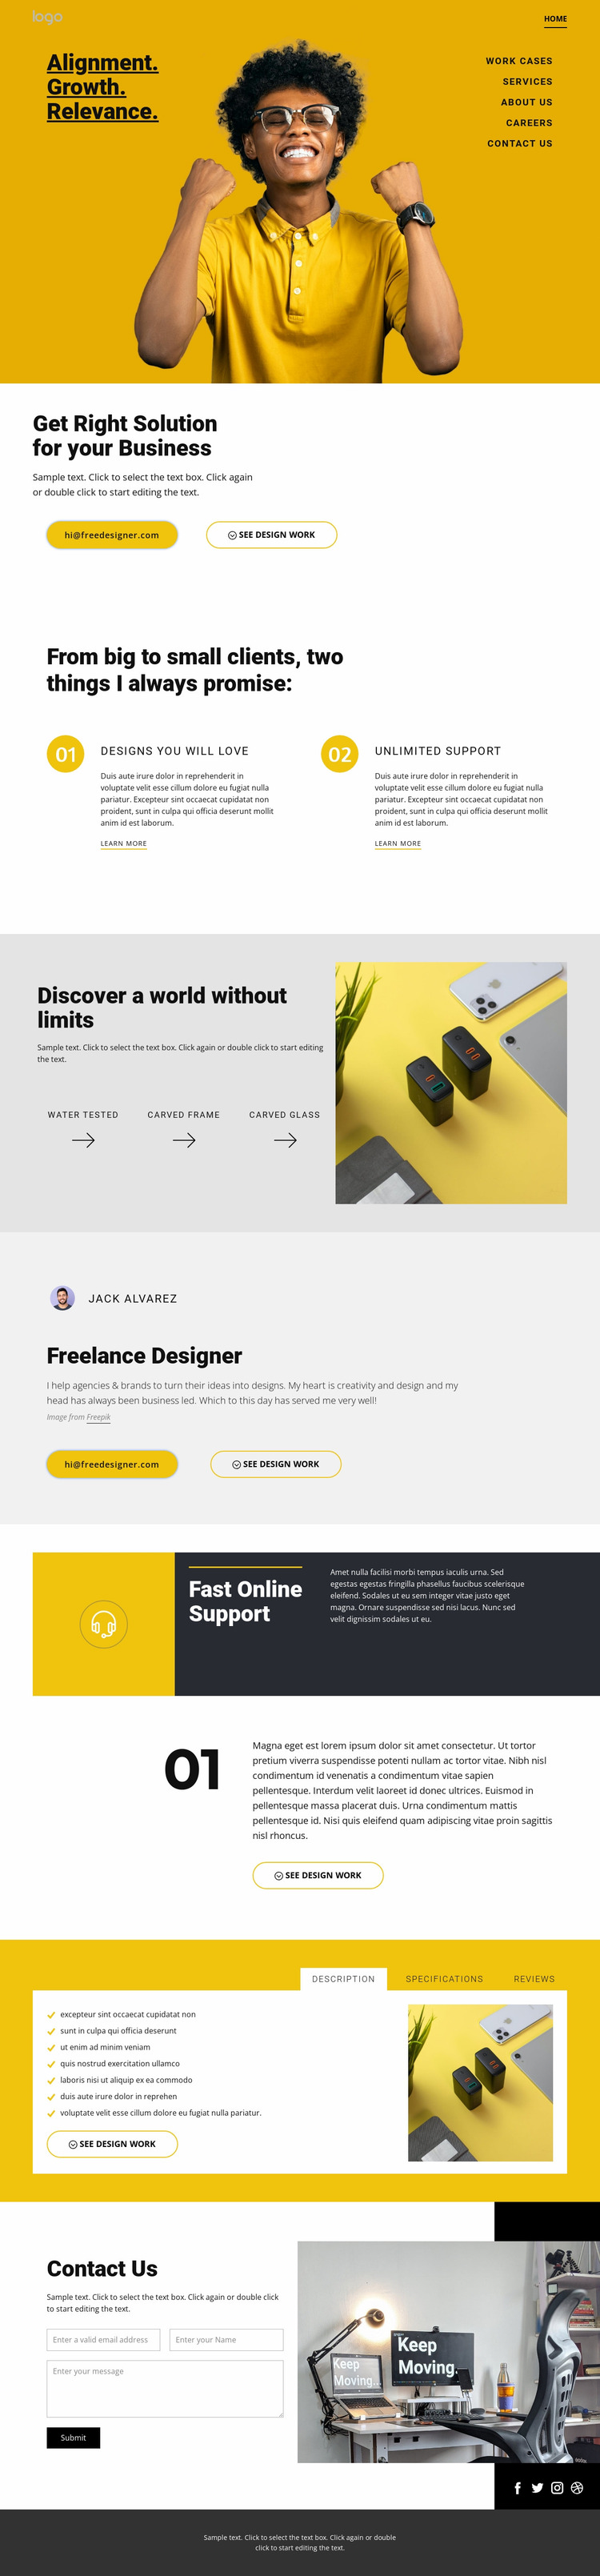 Quality is our goal Website Mockup